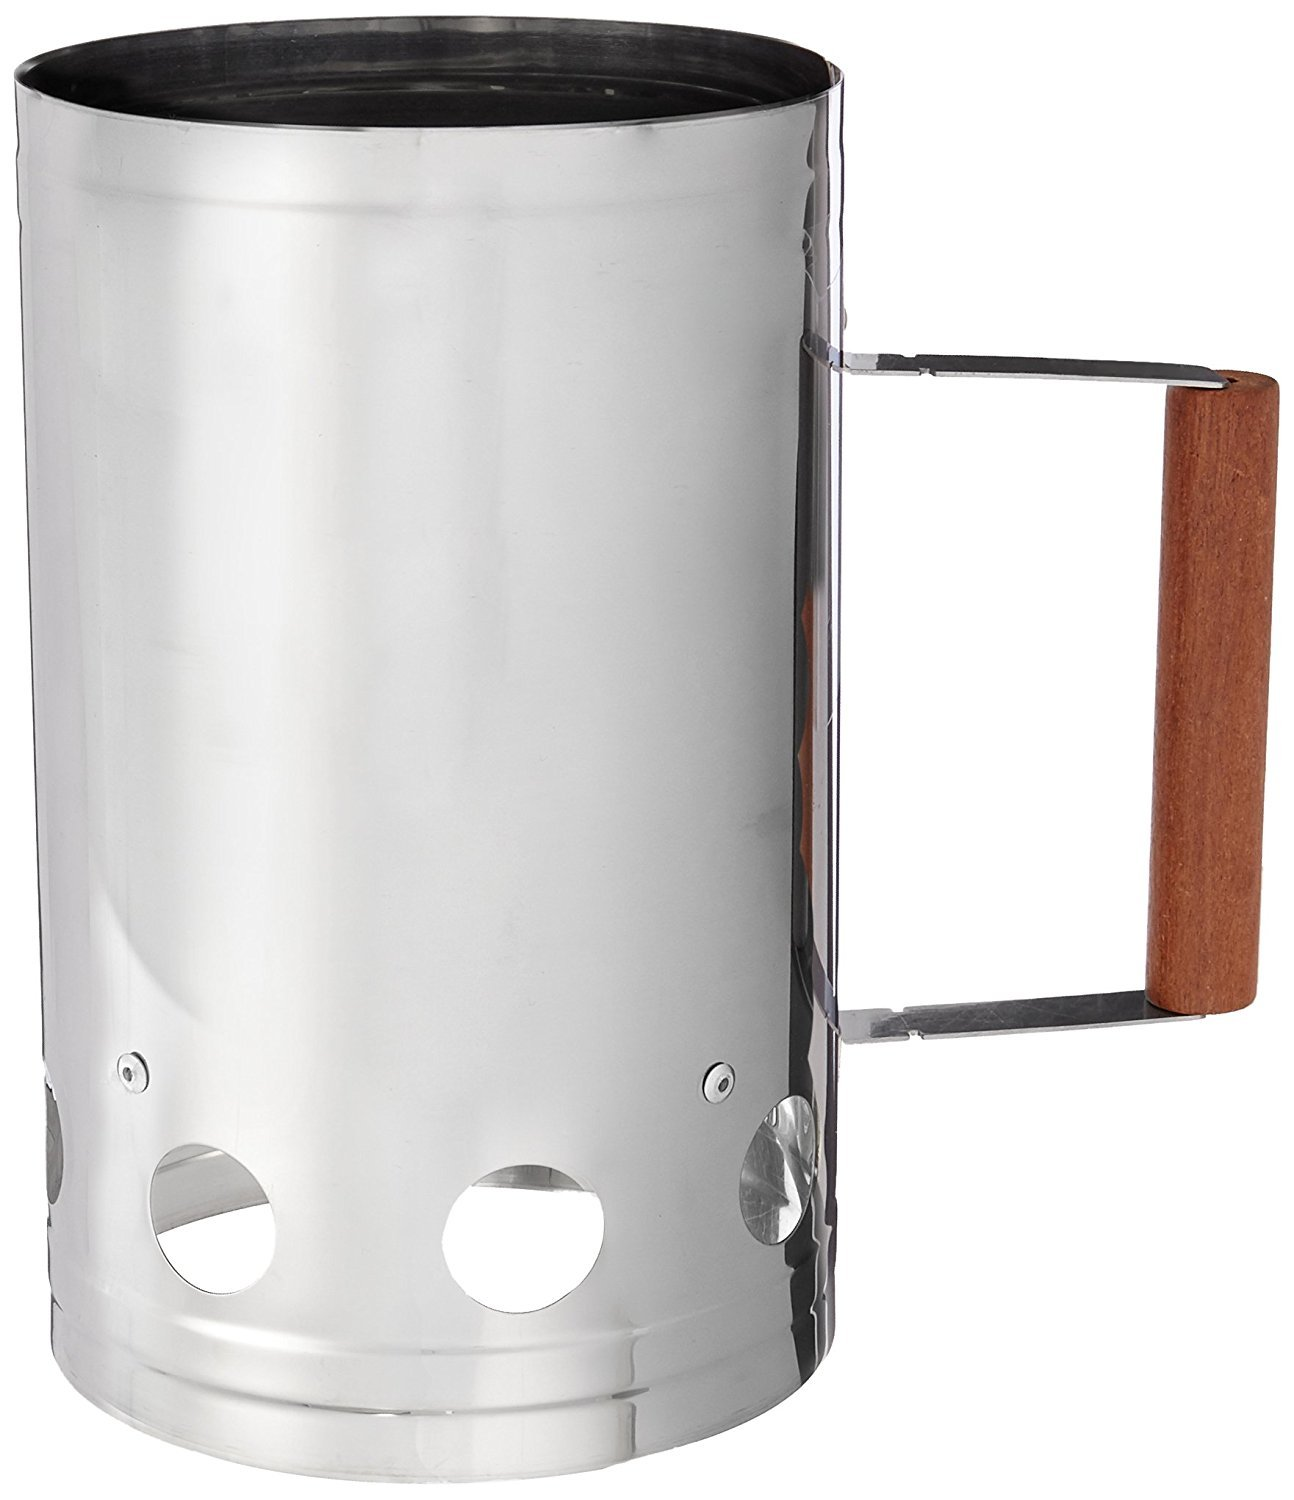 Charcoal Companion Stainless Steel Chimney Charcoal Starter (3) by Charcoal Companion